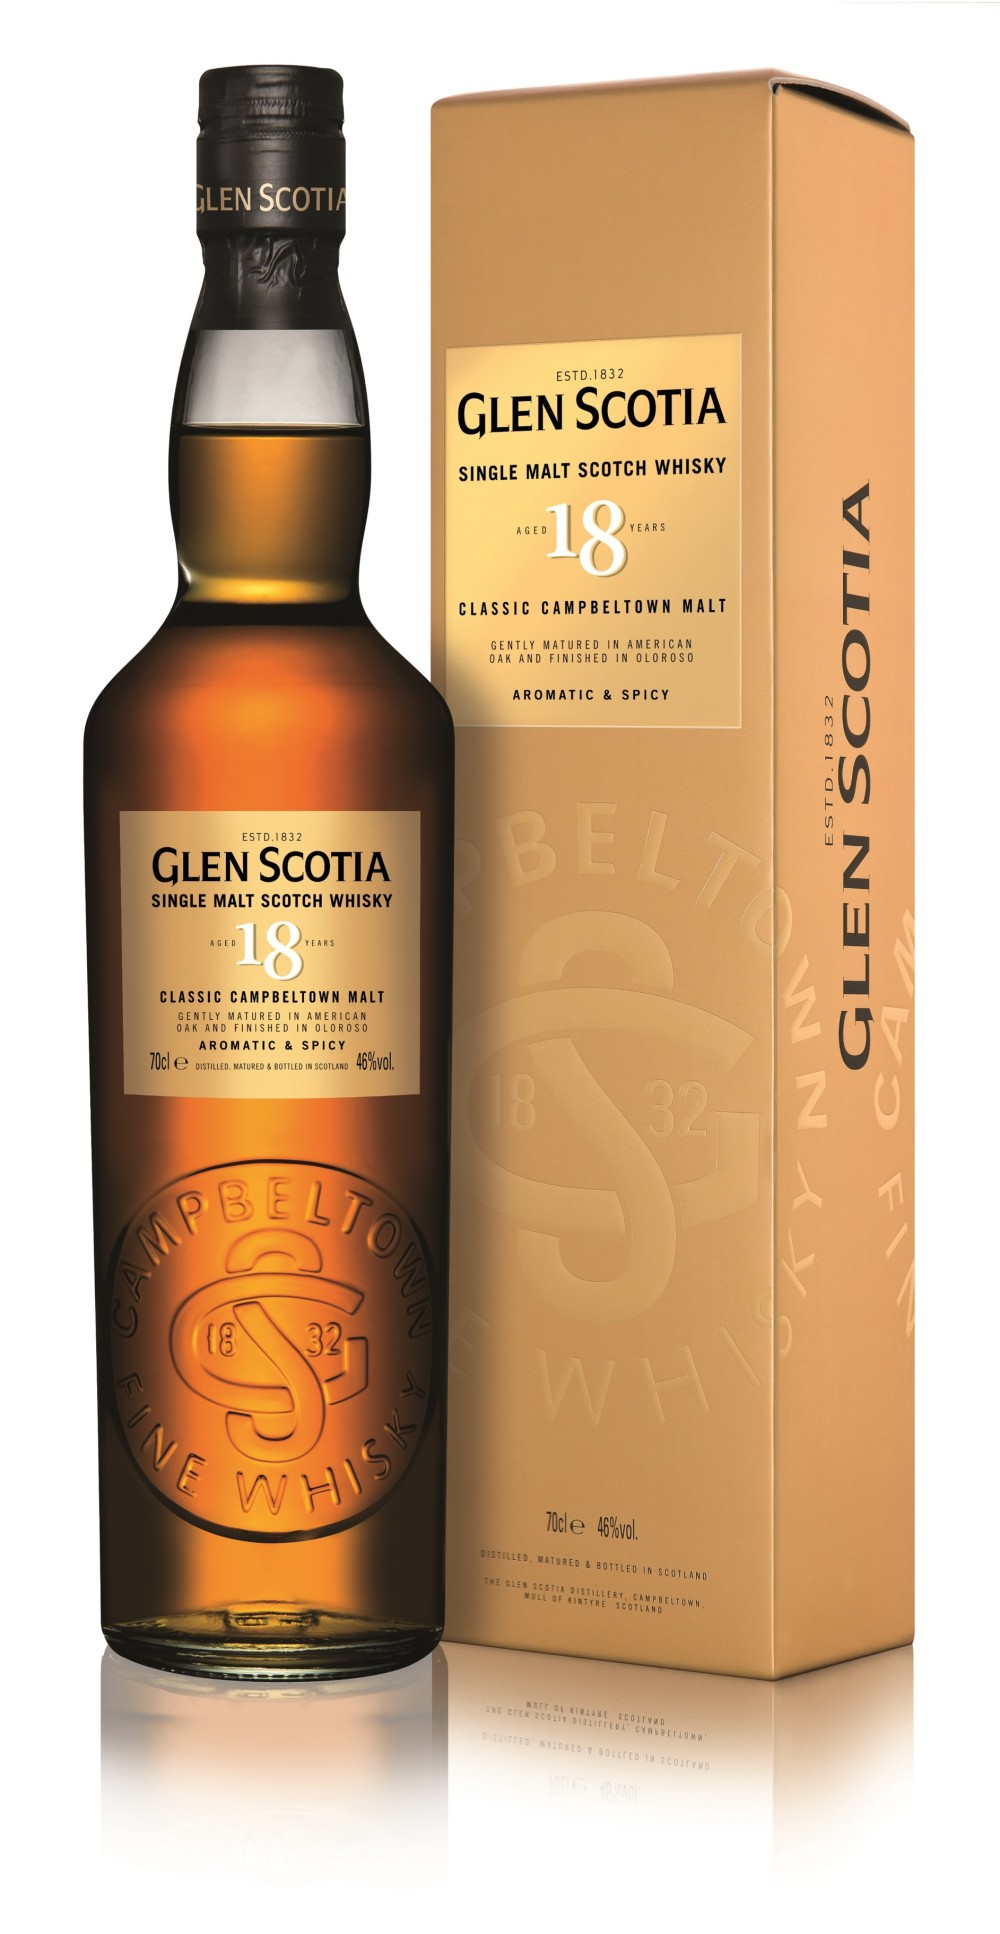 SML Glen Scotia 18 year old